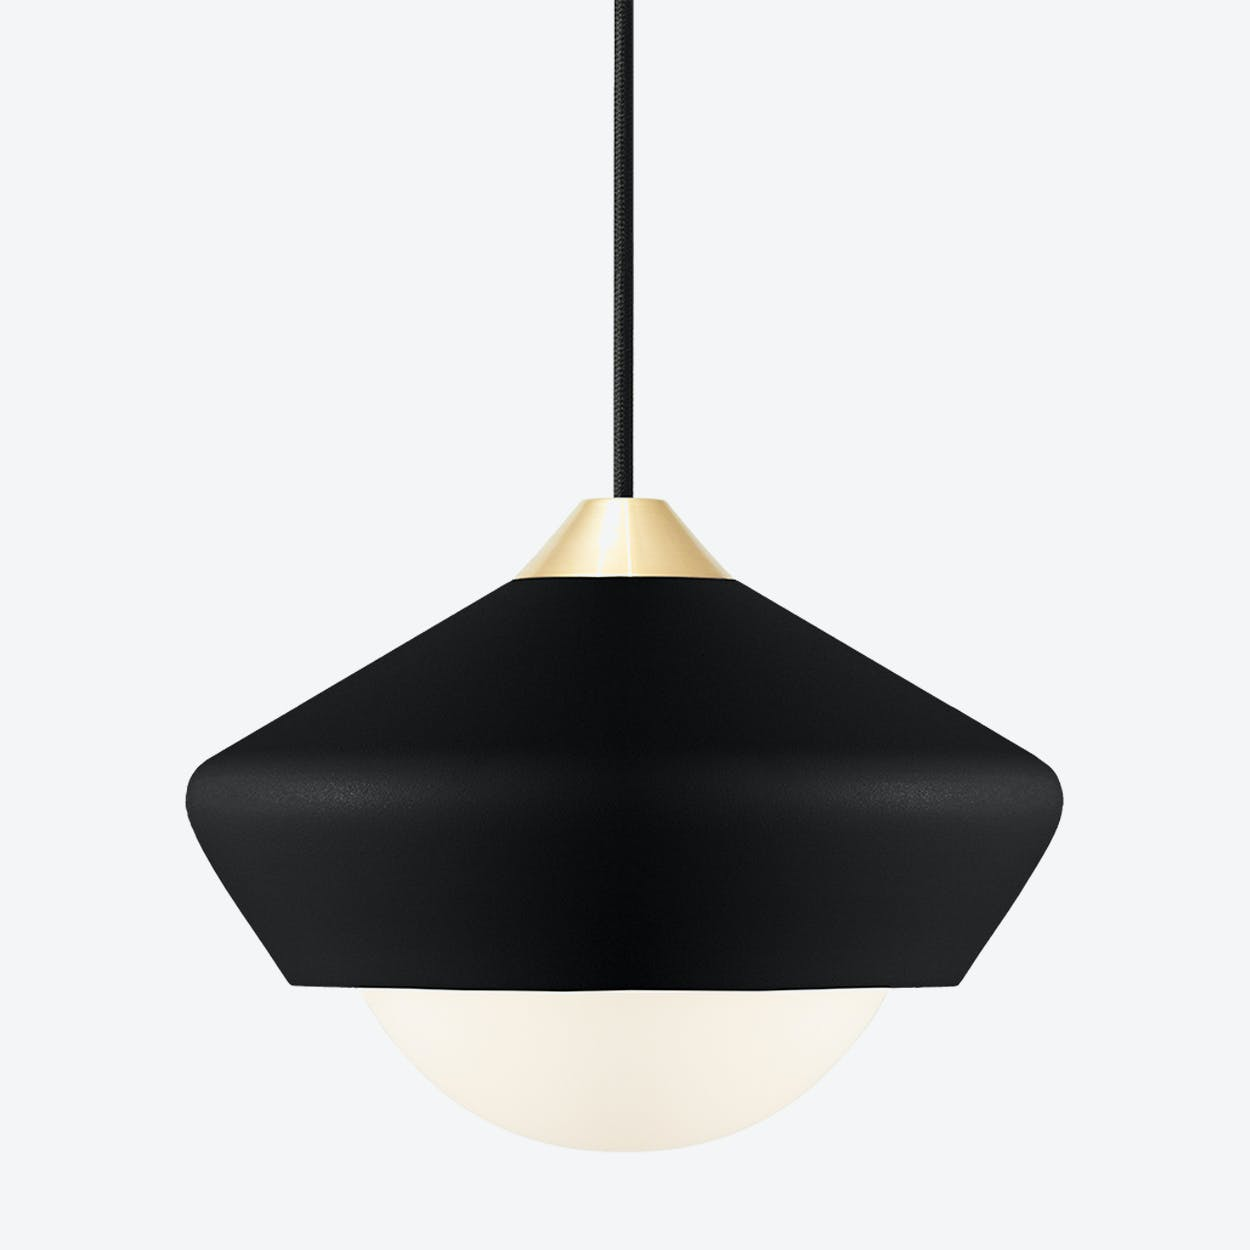 Bright Moon Pendant Light in Black